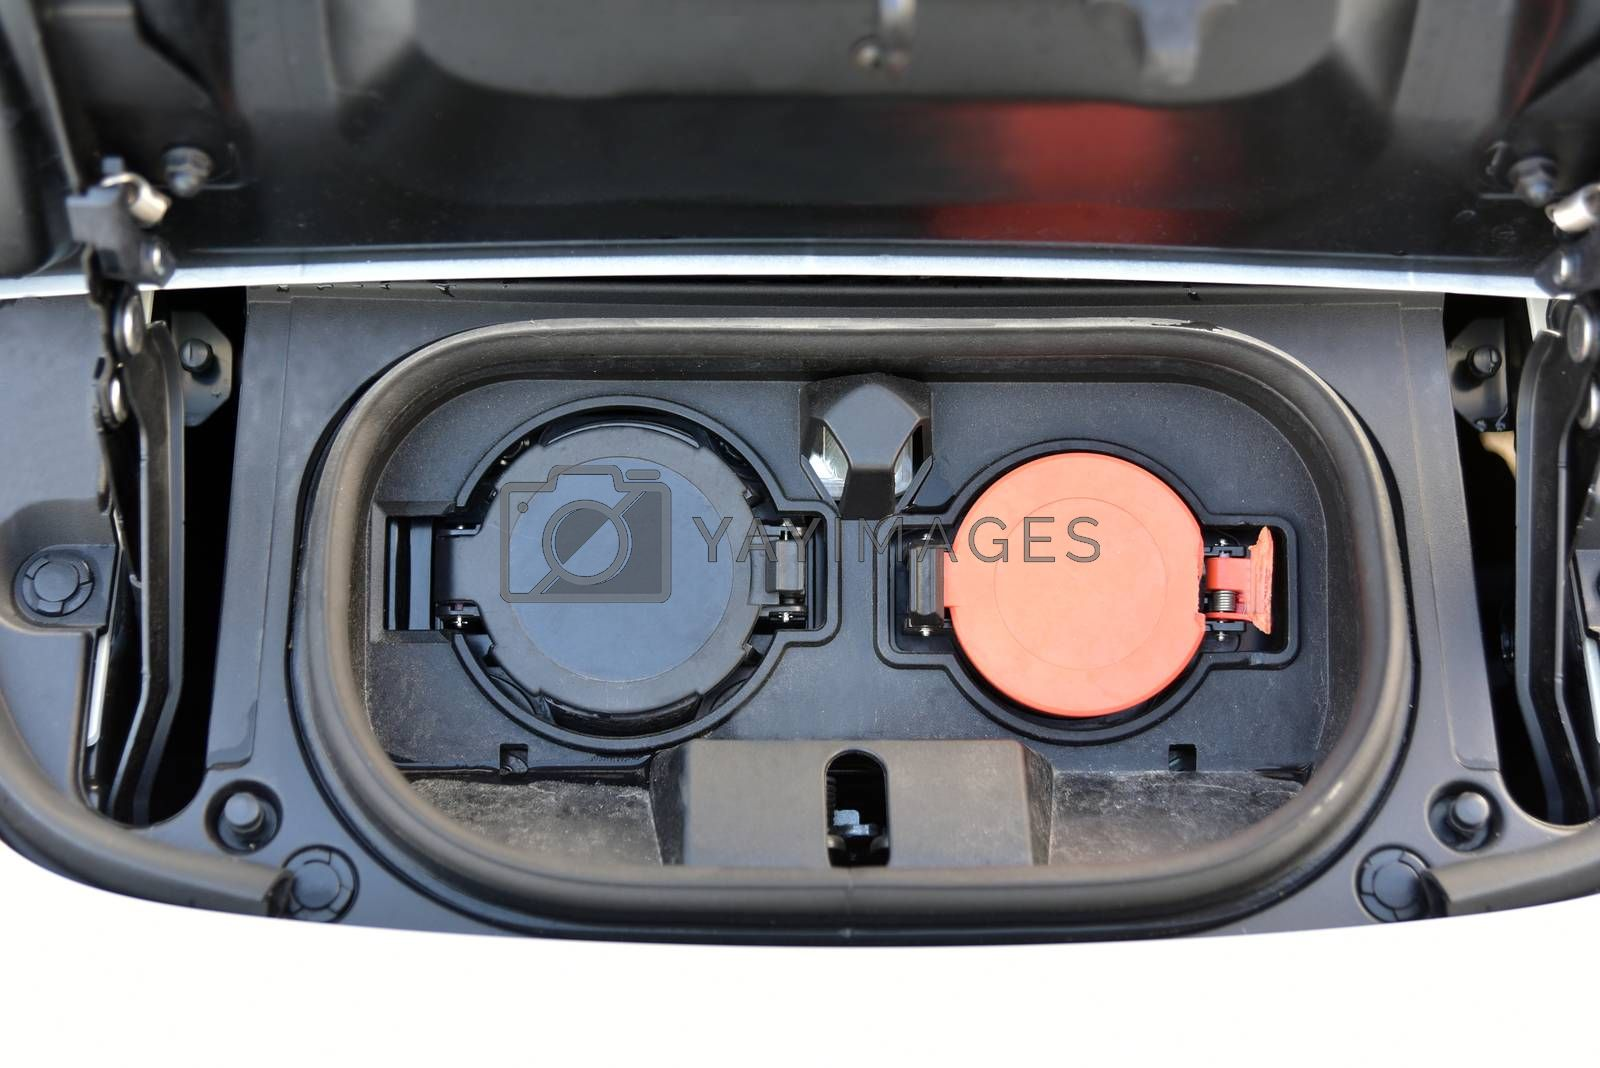 Electric vehicle charging socket by protective cover by aselsa